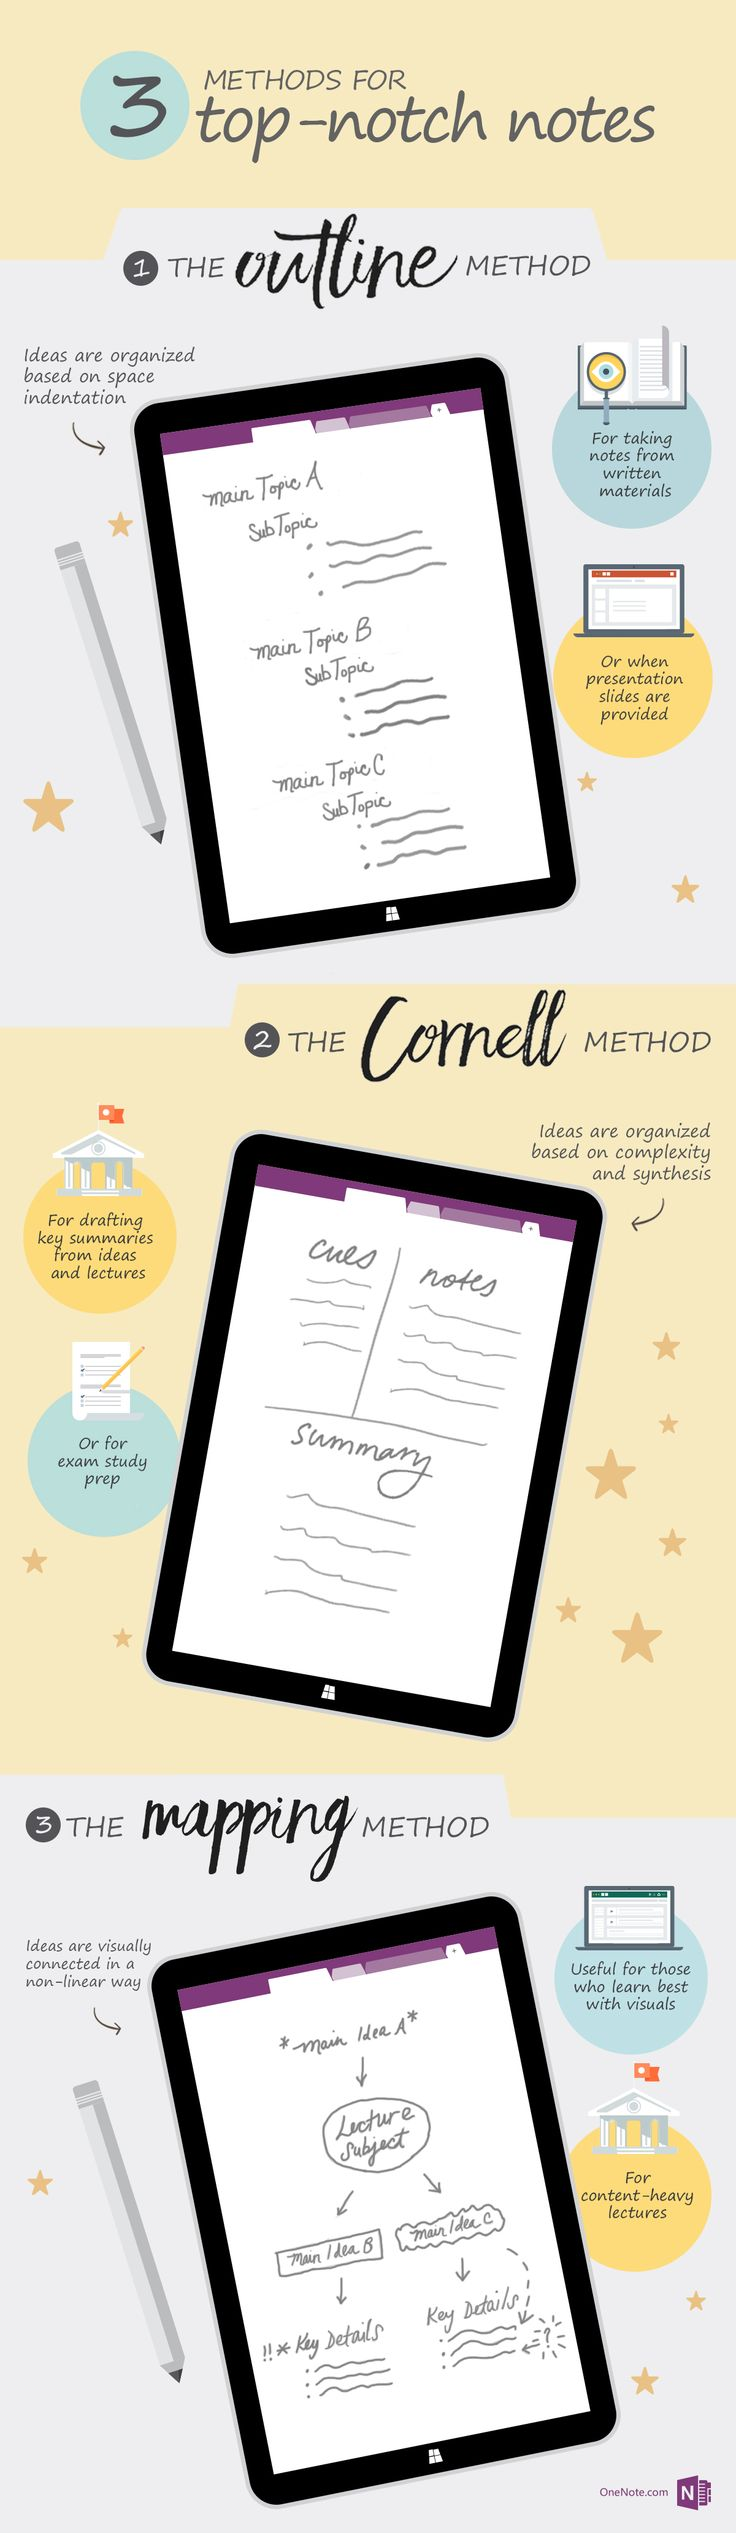 Did you know 60% of notes are forgotten after only 9 hours? In OneNote, students can map, outline and break down notes any way they like. Plus, it's all auto-saved for easy review when exam time comes. Find out more about the classroom-friendly app: http://www.onenote.com/?WT.mc_id=soc_TW_NoteMethods_LM_fans